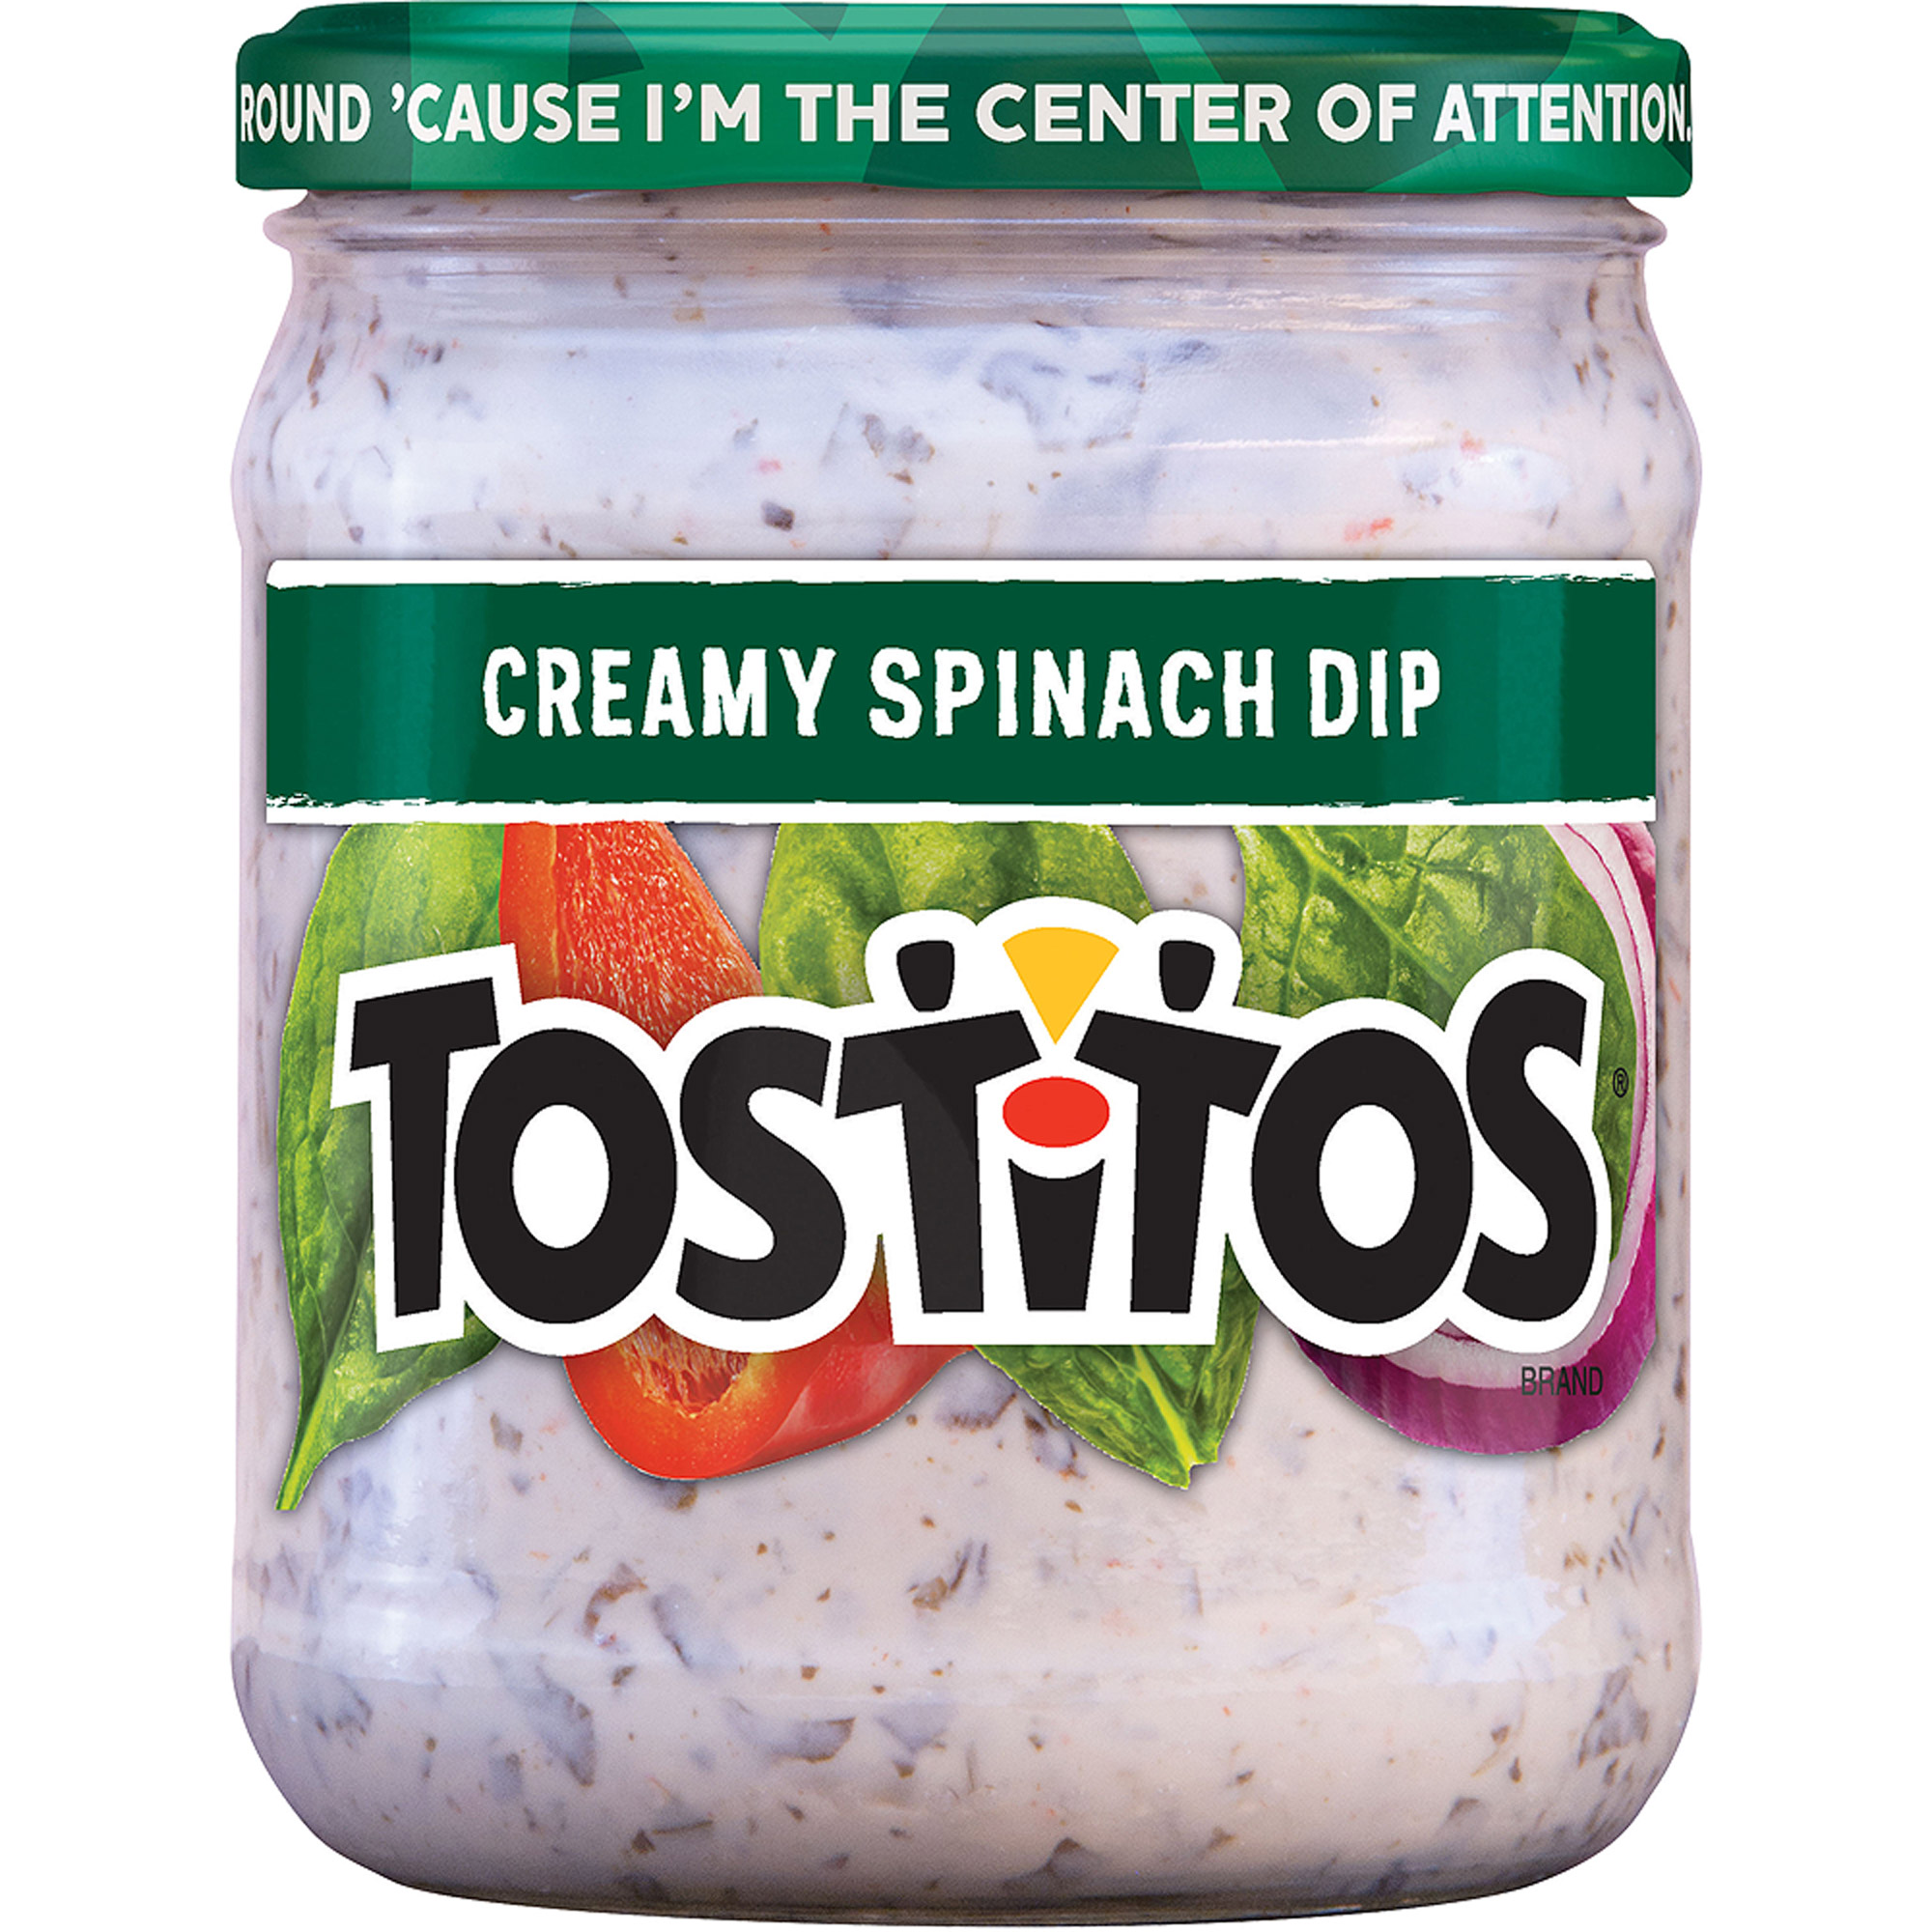 Tostitos Creamy Spinach Dip, 15 oz.